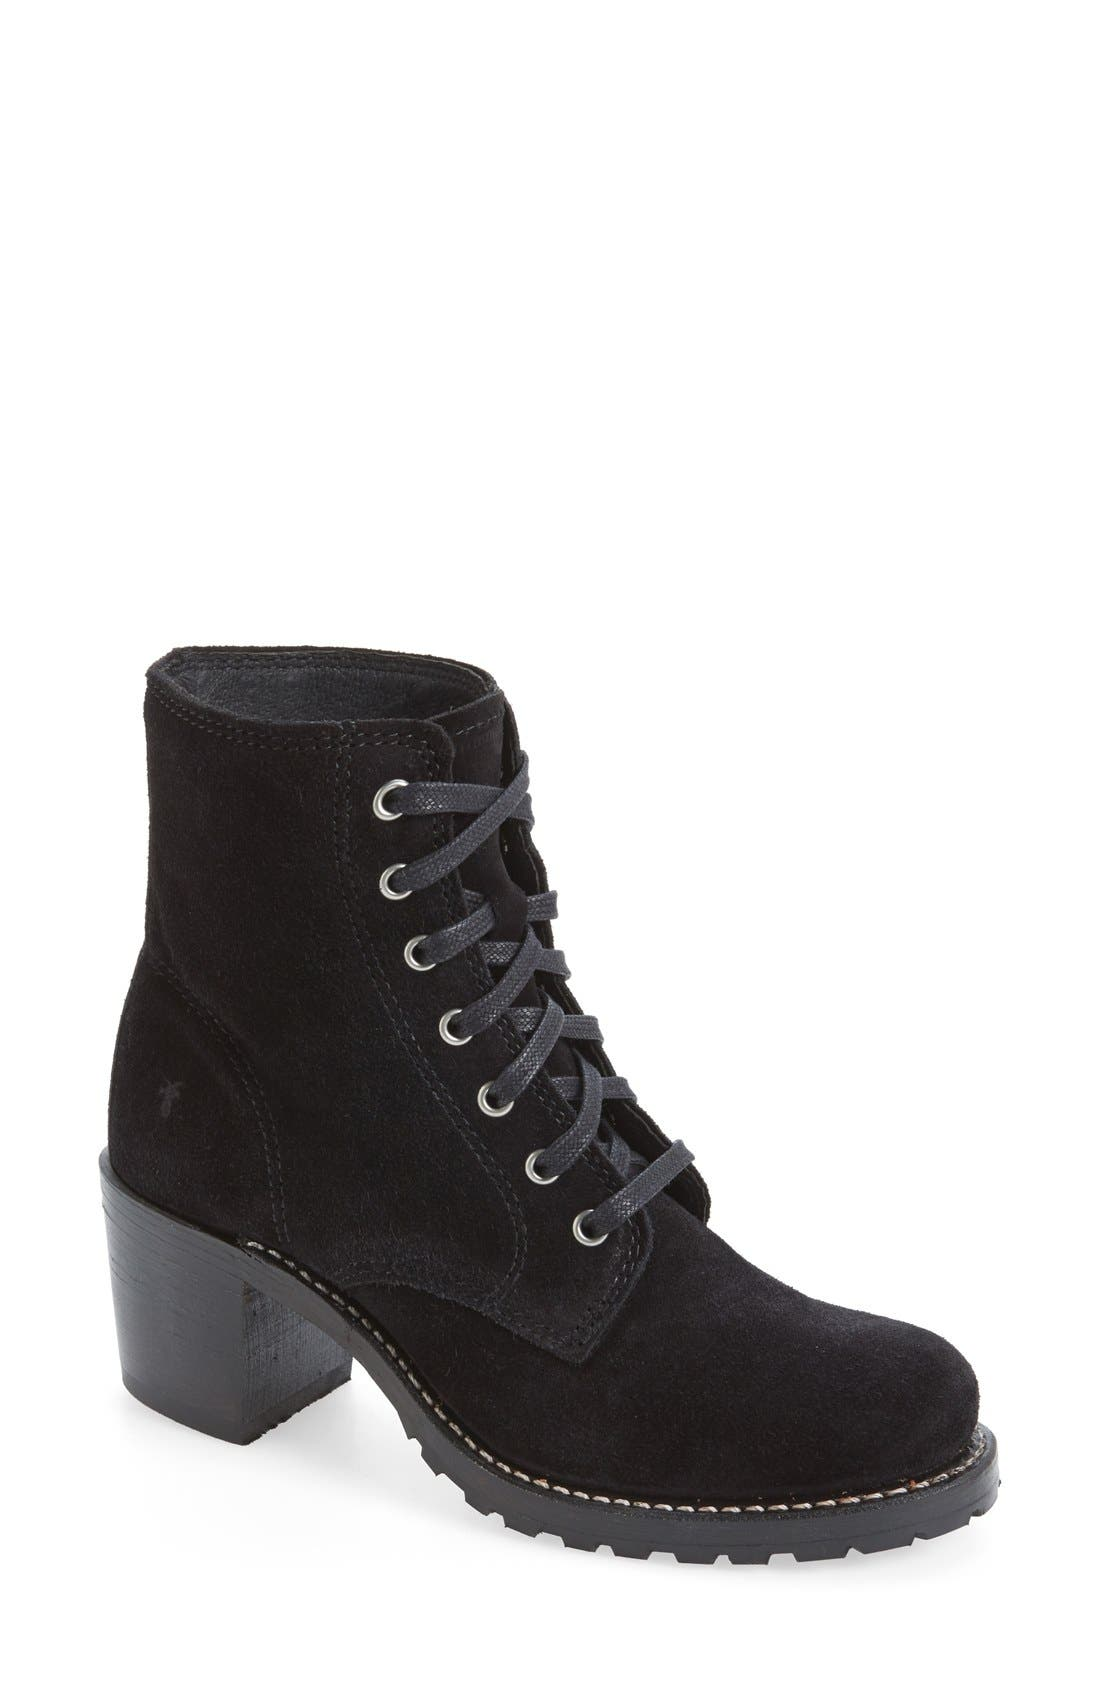 Alternate Image 1 Selected - Frye 'Sabrina' Lace-Up Bootie